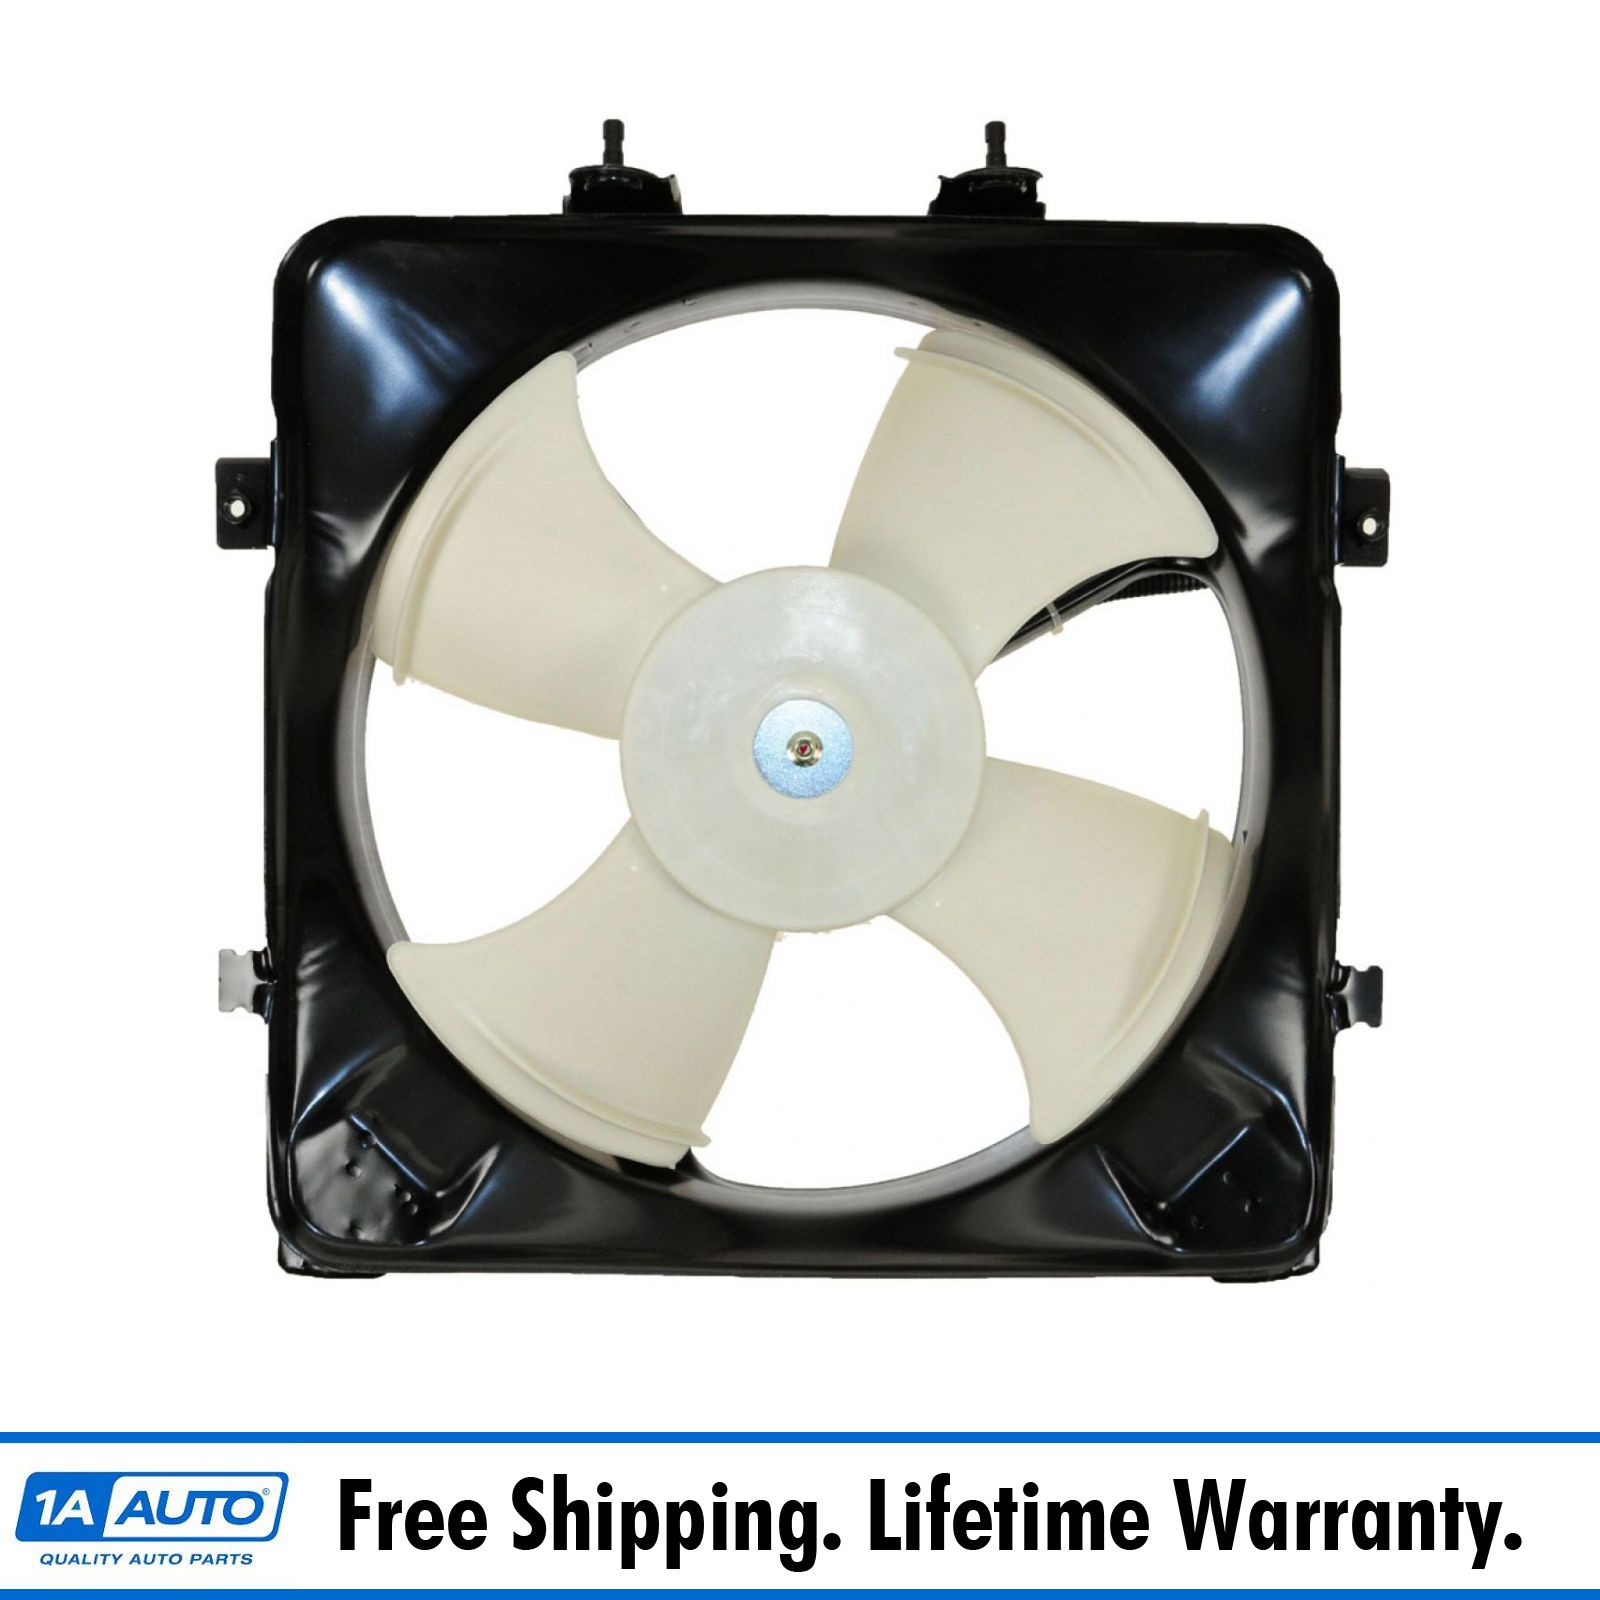 A//C Condenser Fan Assembly-Air Conditioning Fan Assembly fits 96-98 Civic 1.6L